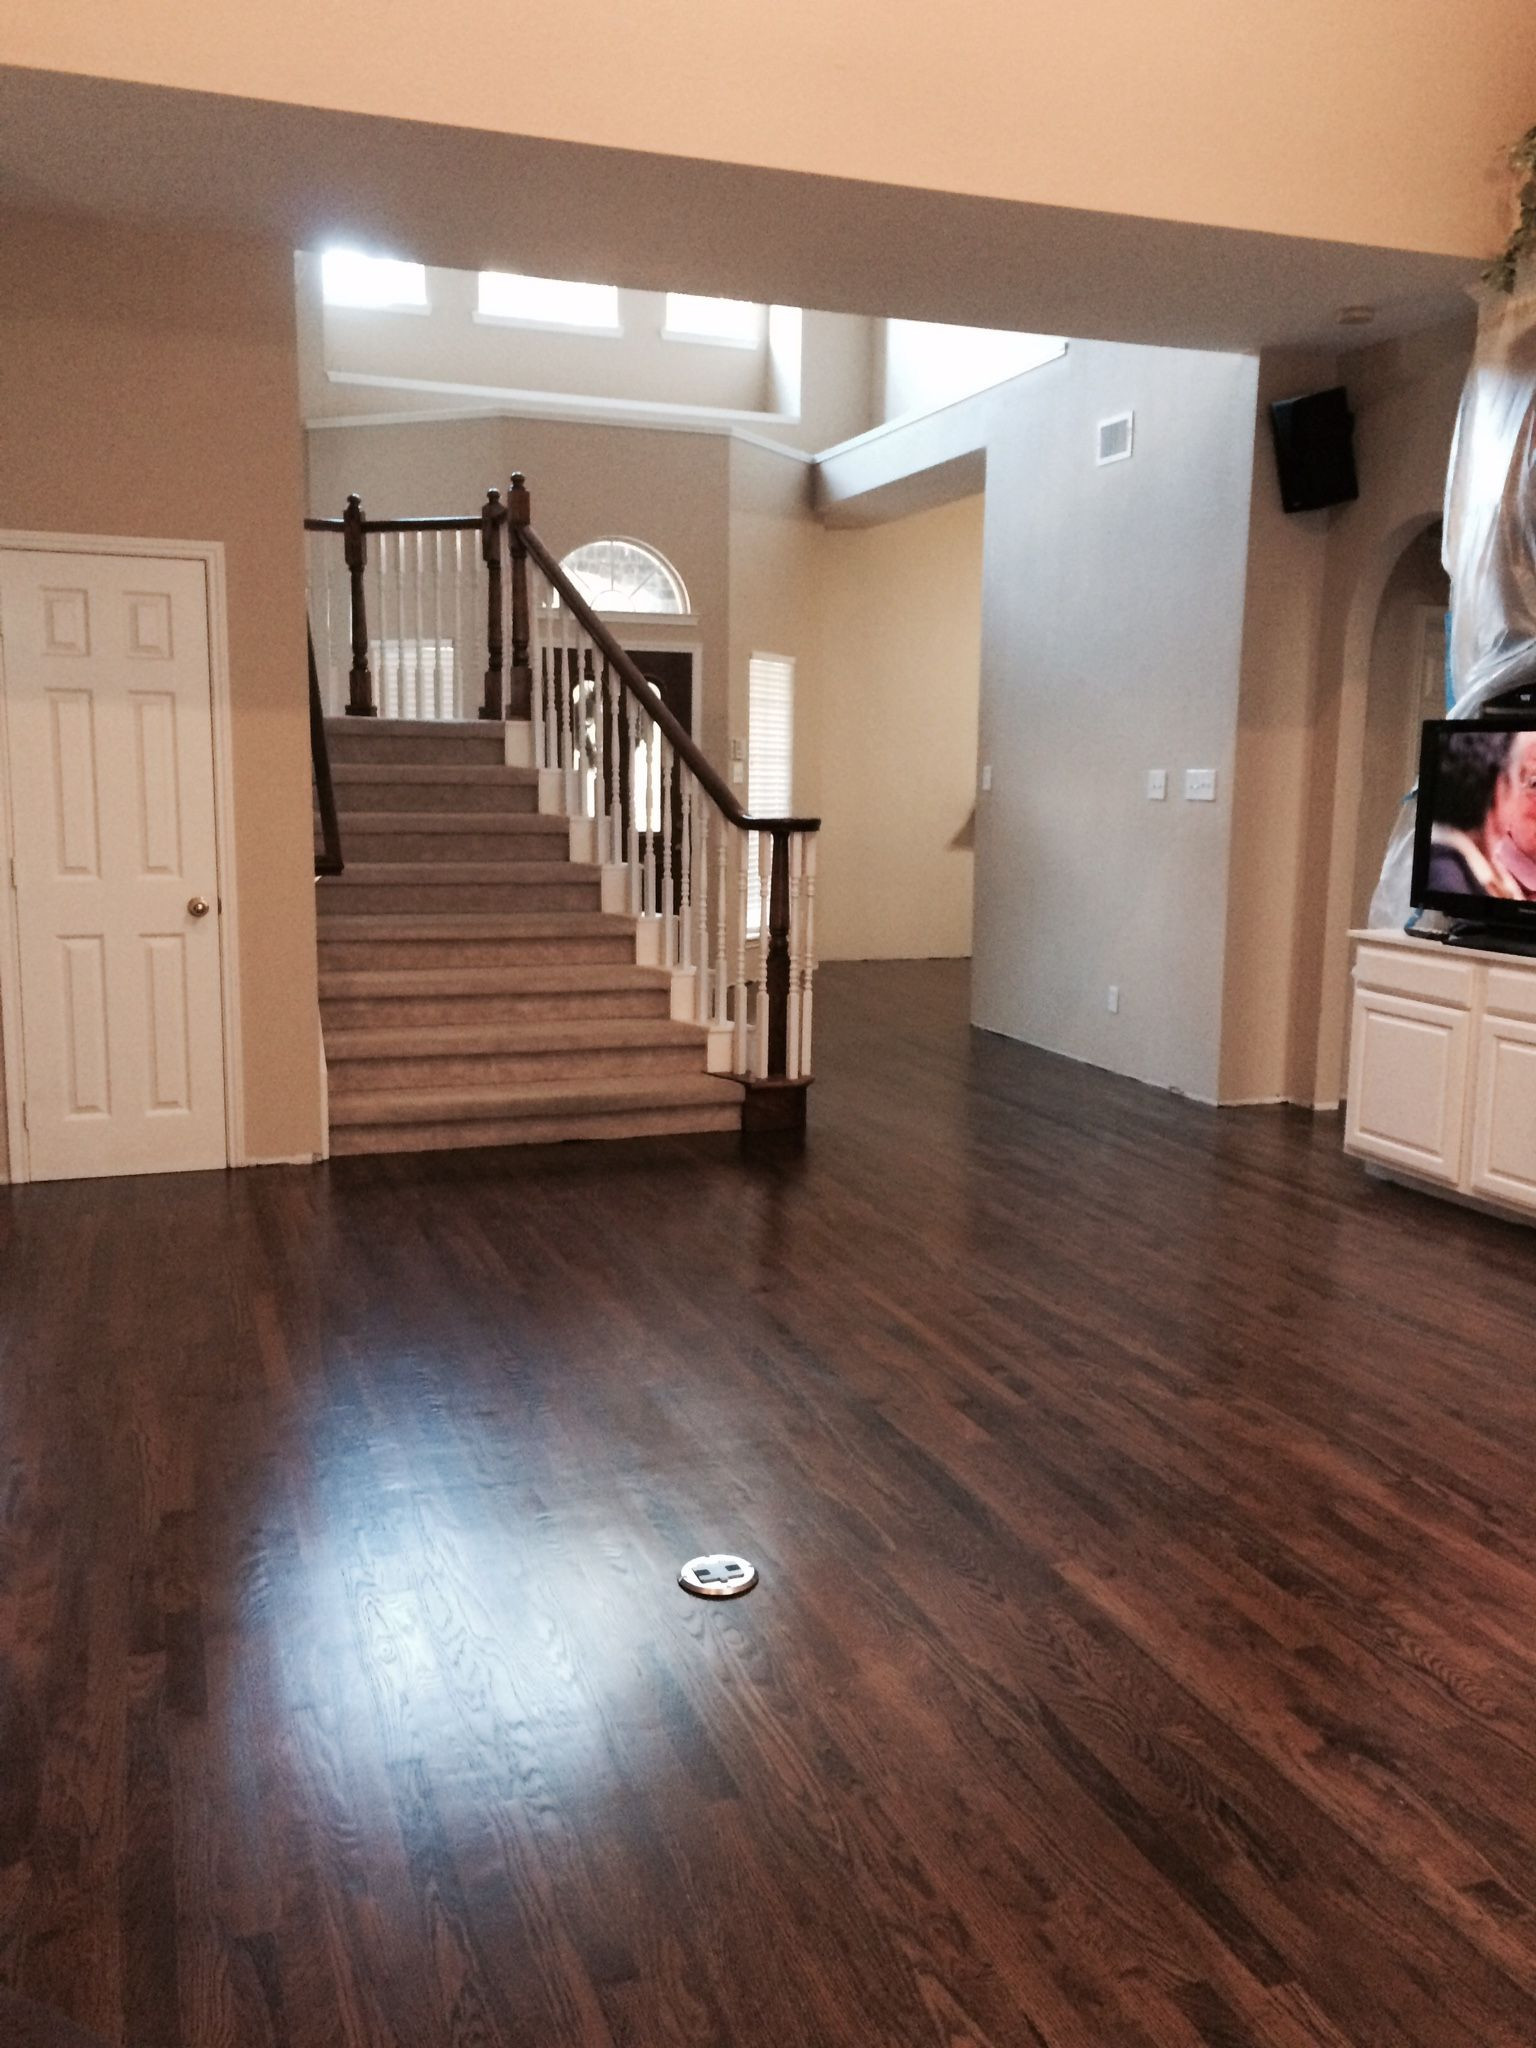 can you stain hardwood floors a different color of dark walnut stain on white oak hardwood remodel 1floors in 2018 throughout dark walnut stain on white oak hardwood walnut hardwood flooring hardwood floor stain colors